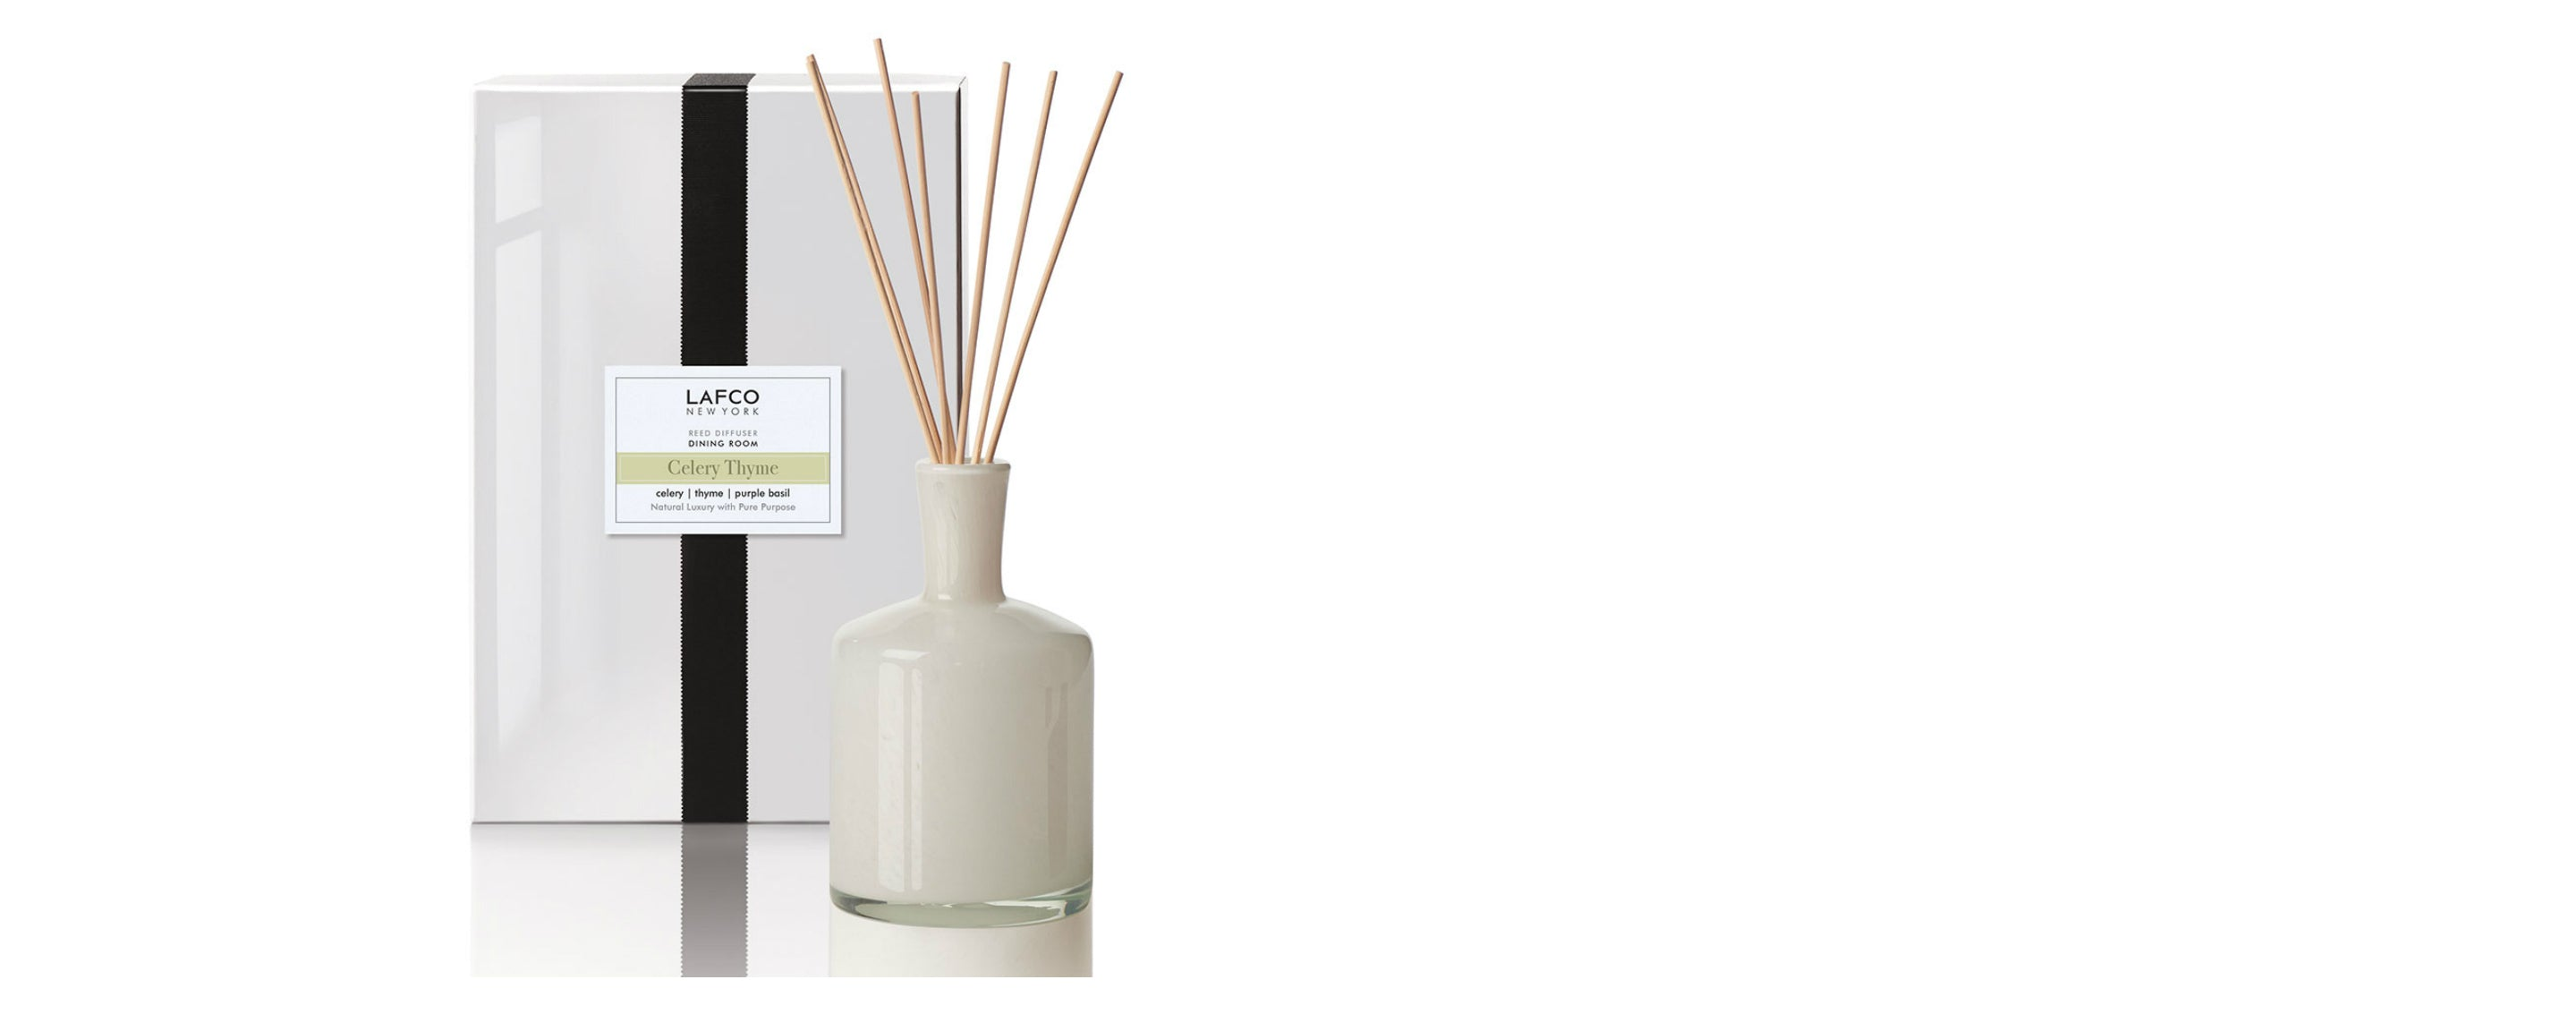 celery thyme dining room diffuser by lafco new york